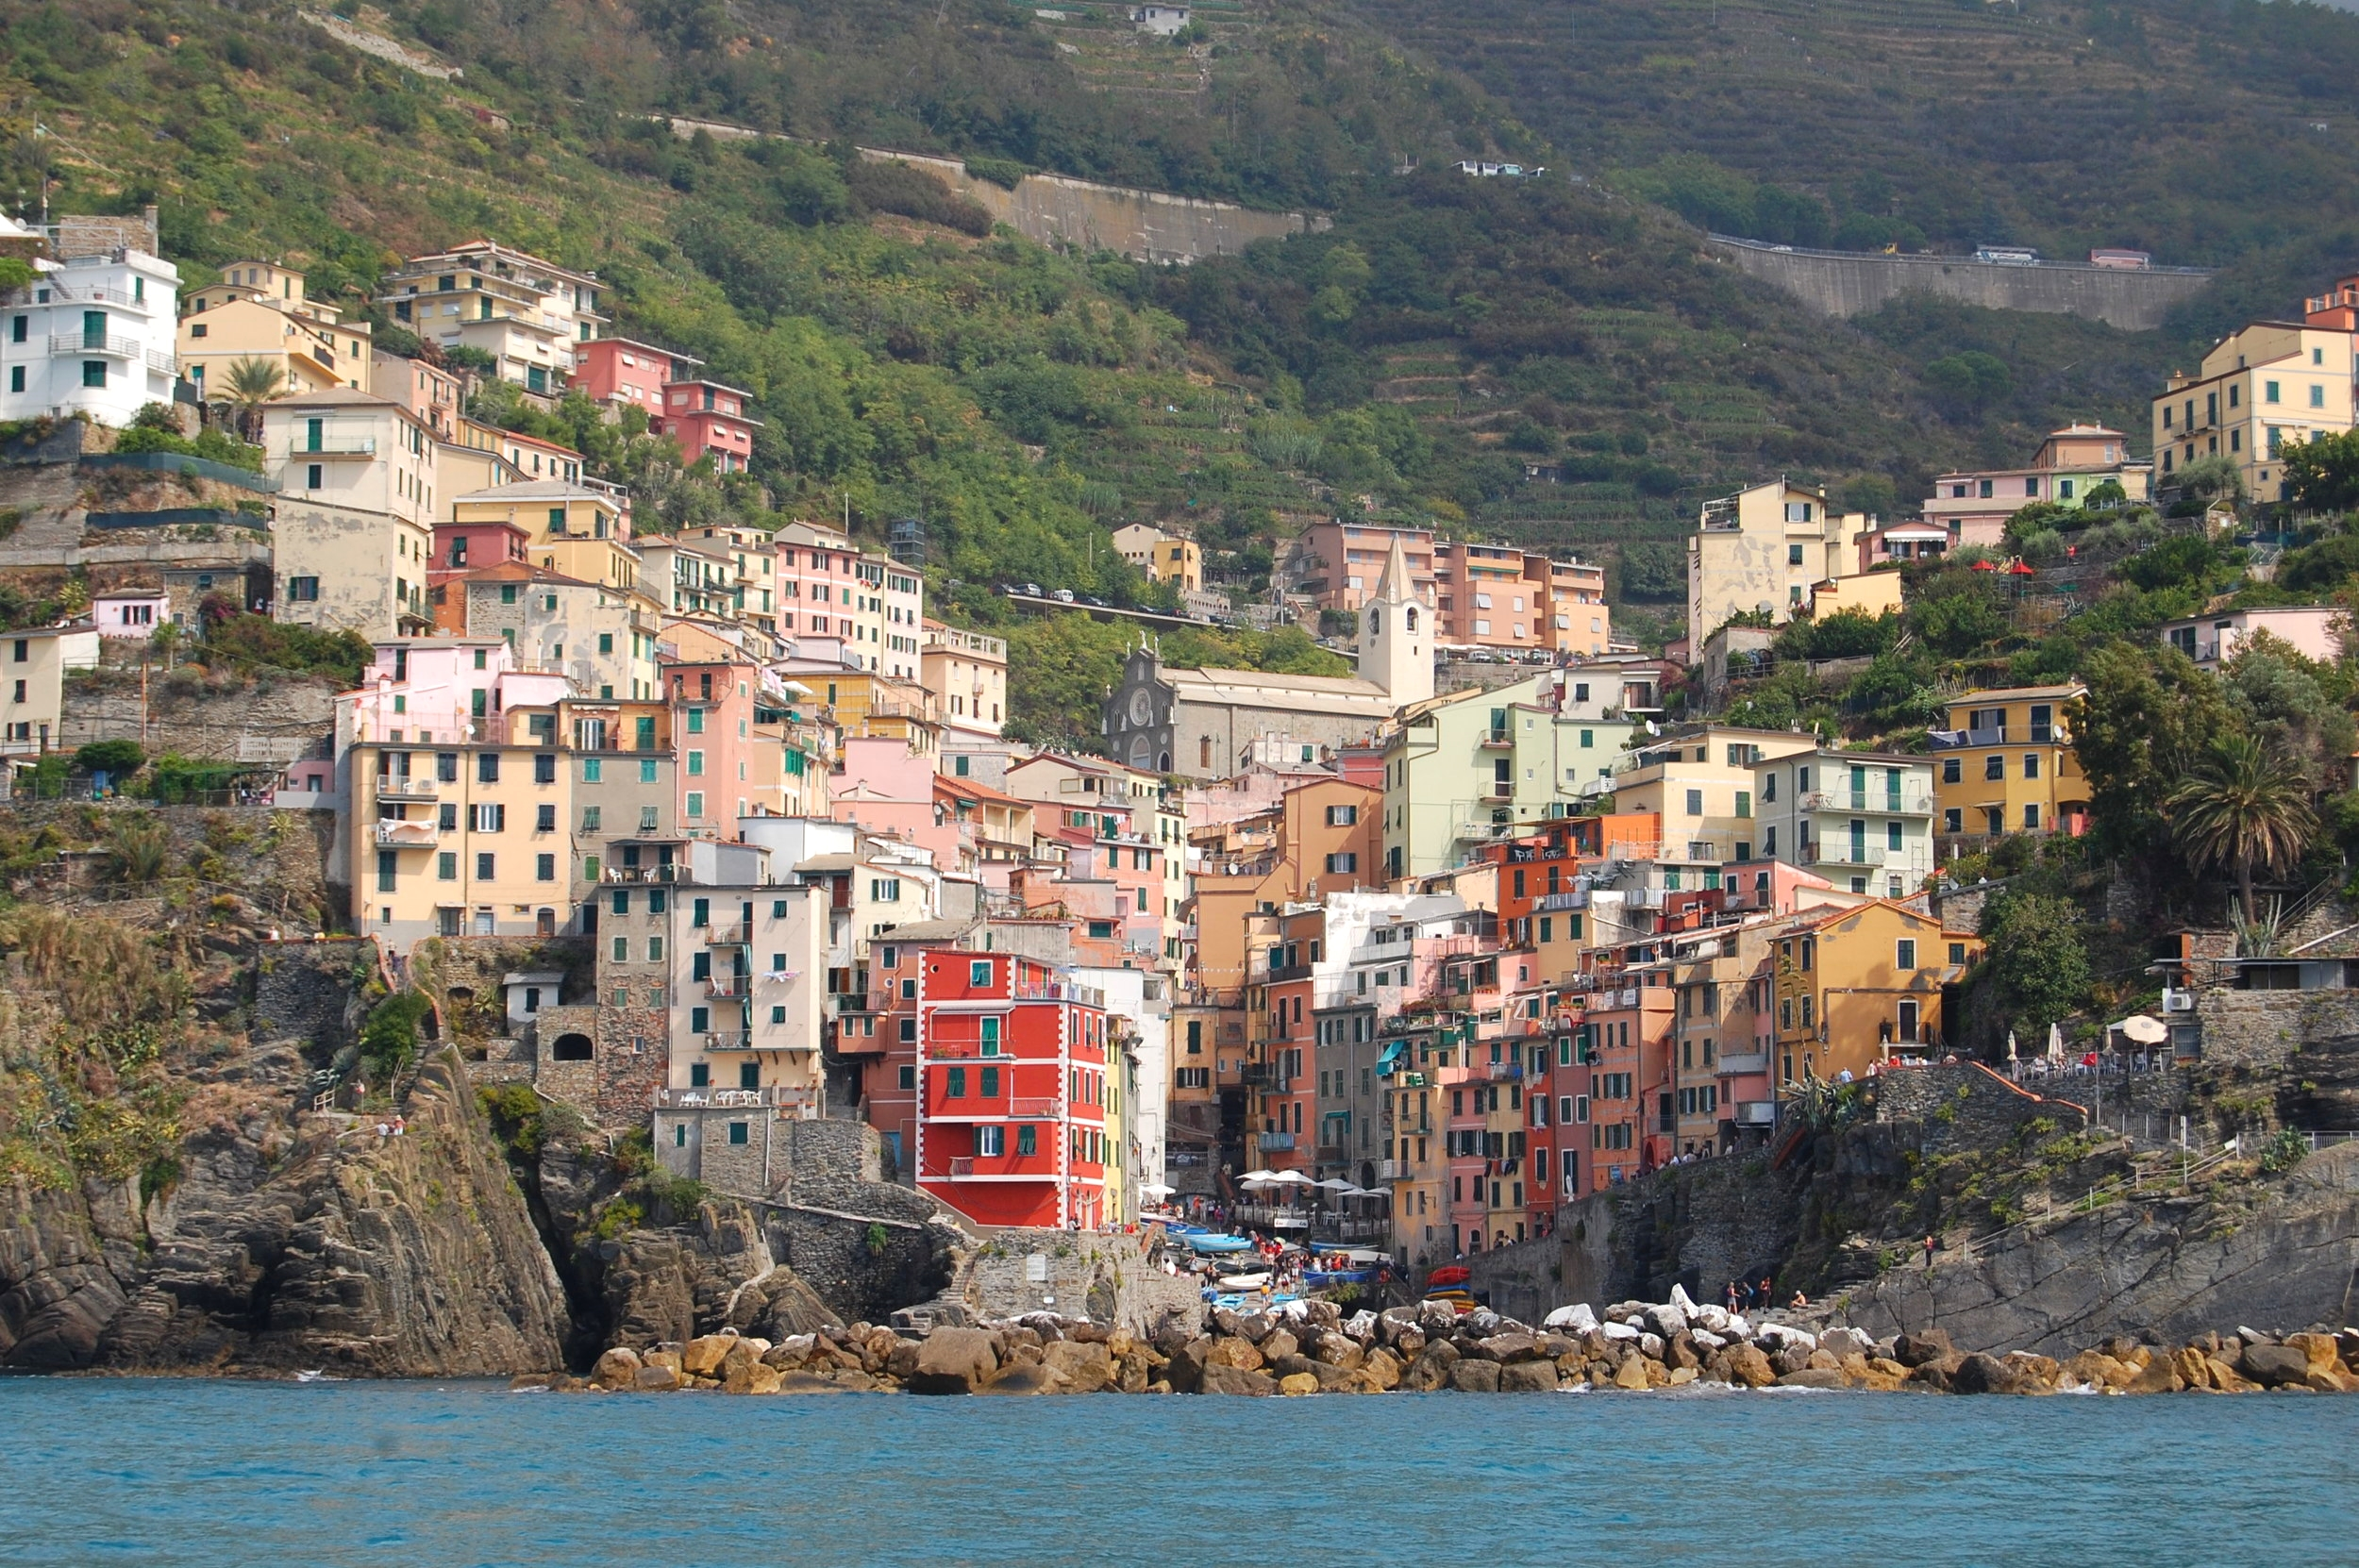 We finally arrived in Cinque Terre!!